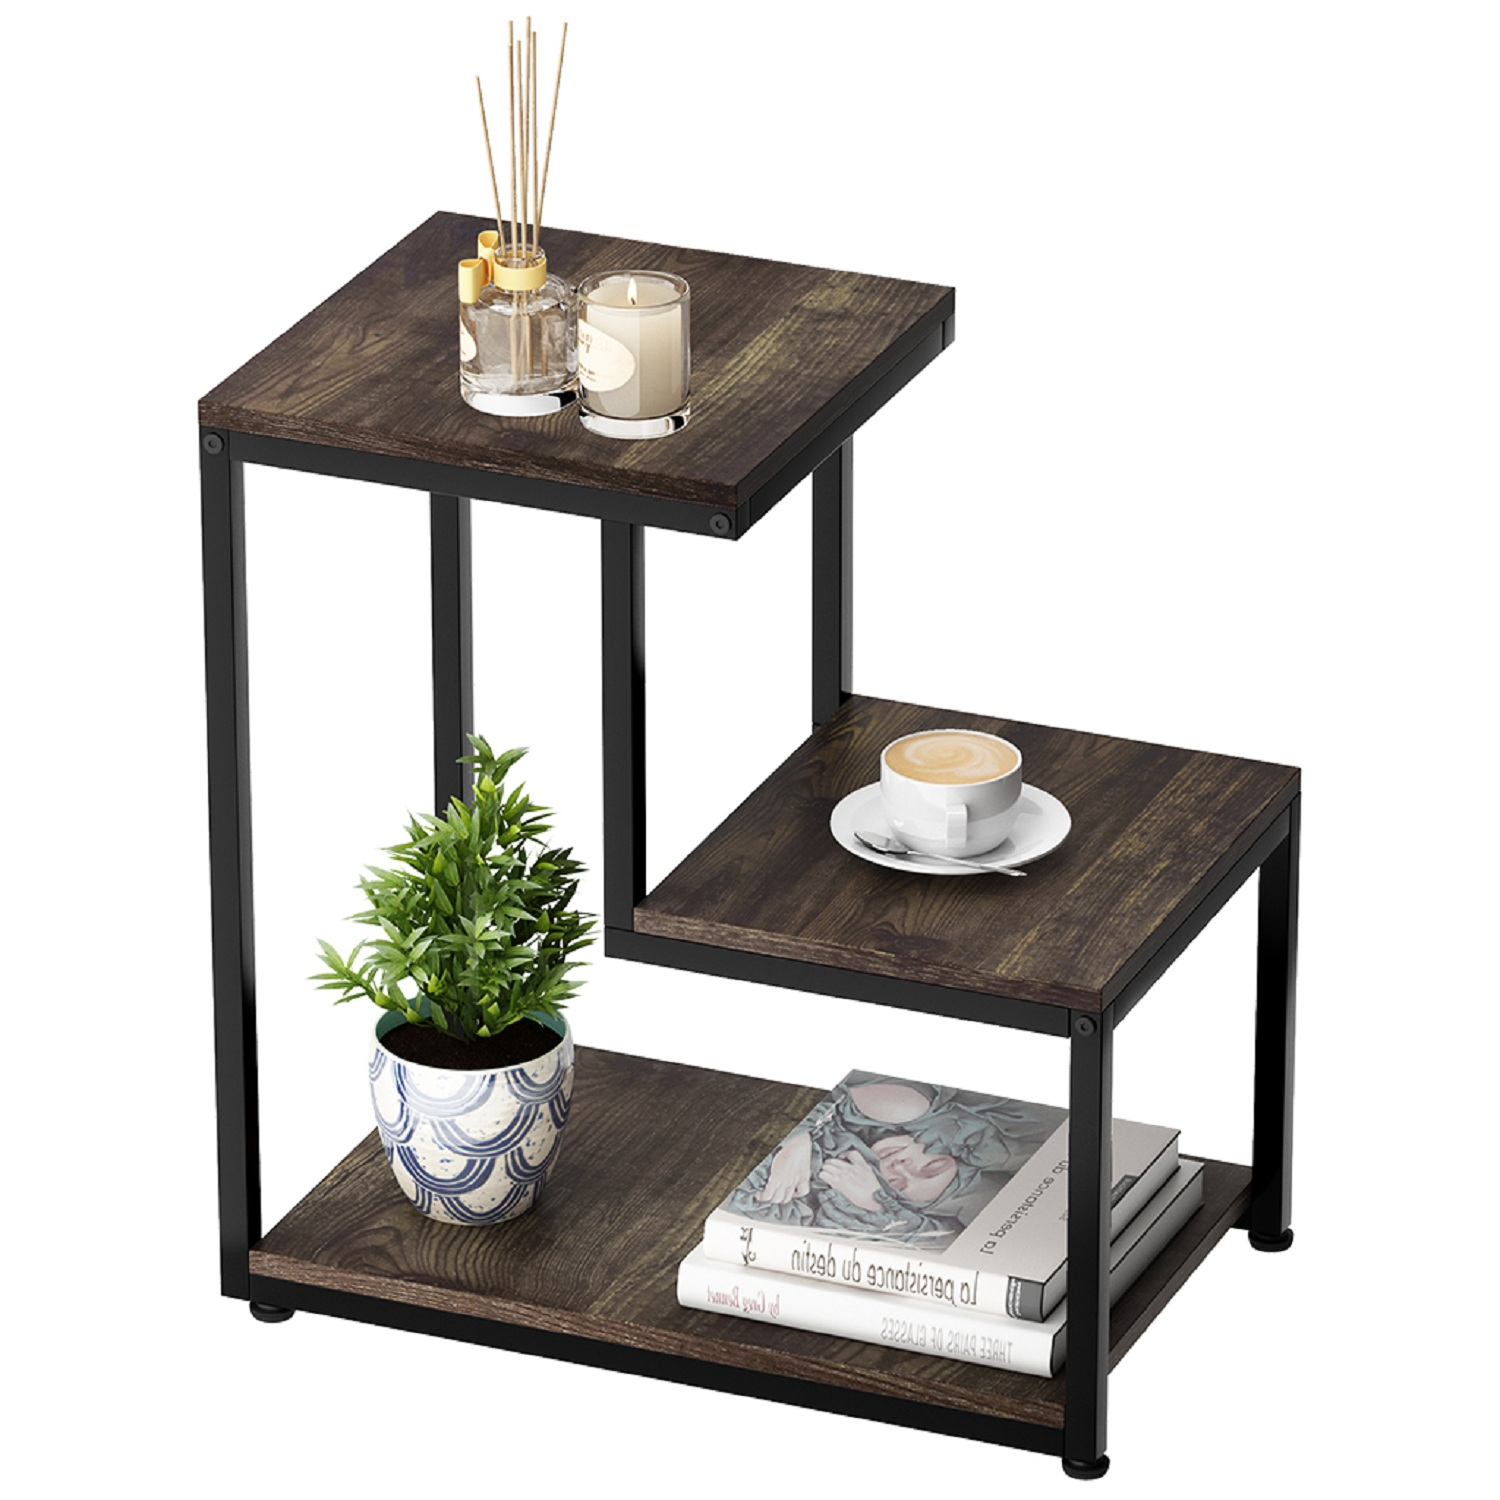 rustic large end table wooden 3 tier sofa side table with storage shelf for living room ladder nightstand for bedroom easy assembly rustic brown